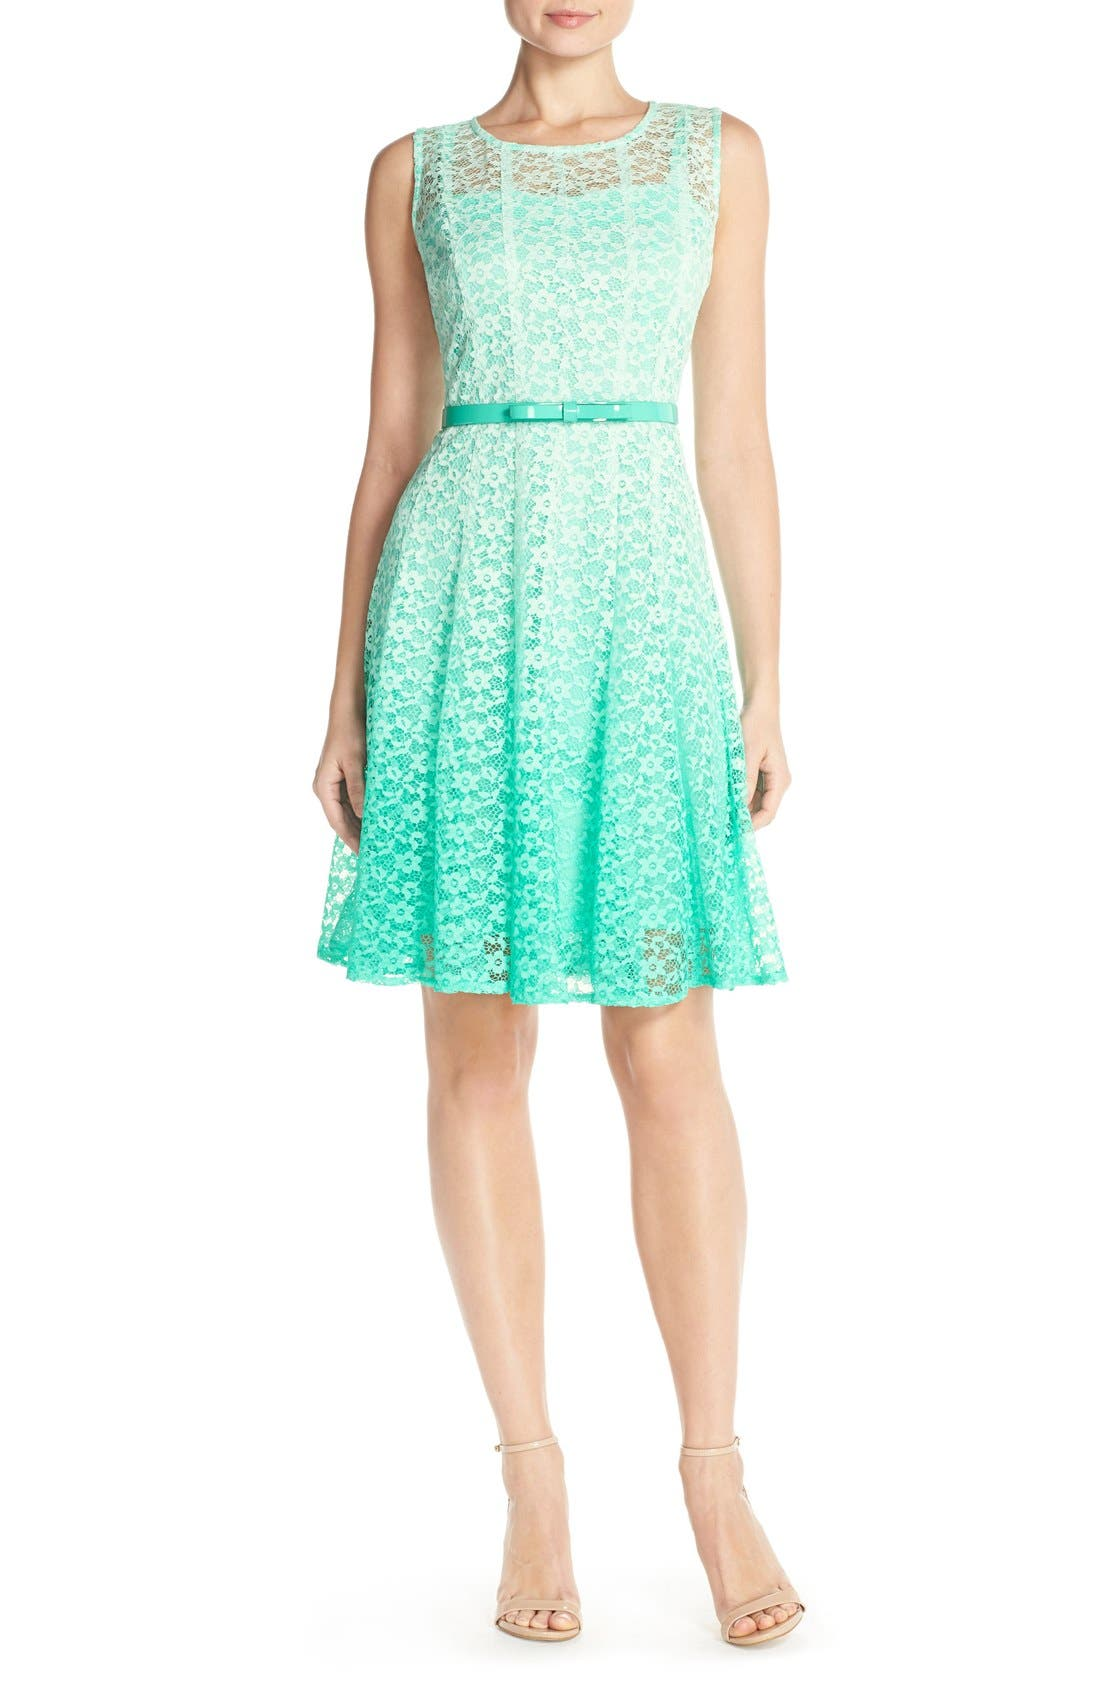 Alternate Image 1 Selected - Chetta B Ombré Lace Sleeveless A-Line Dress with Belt